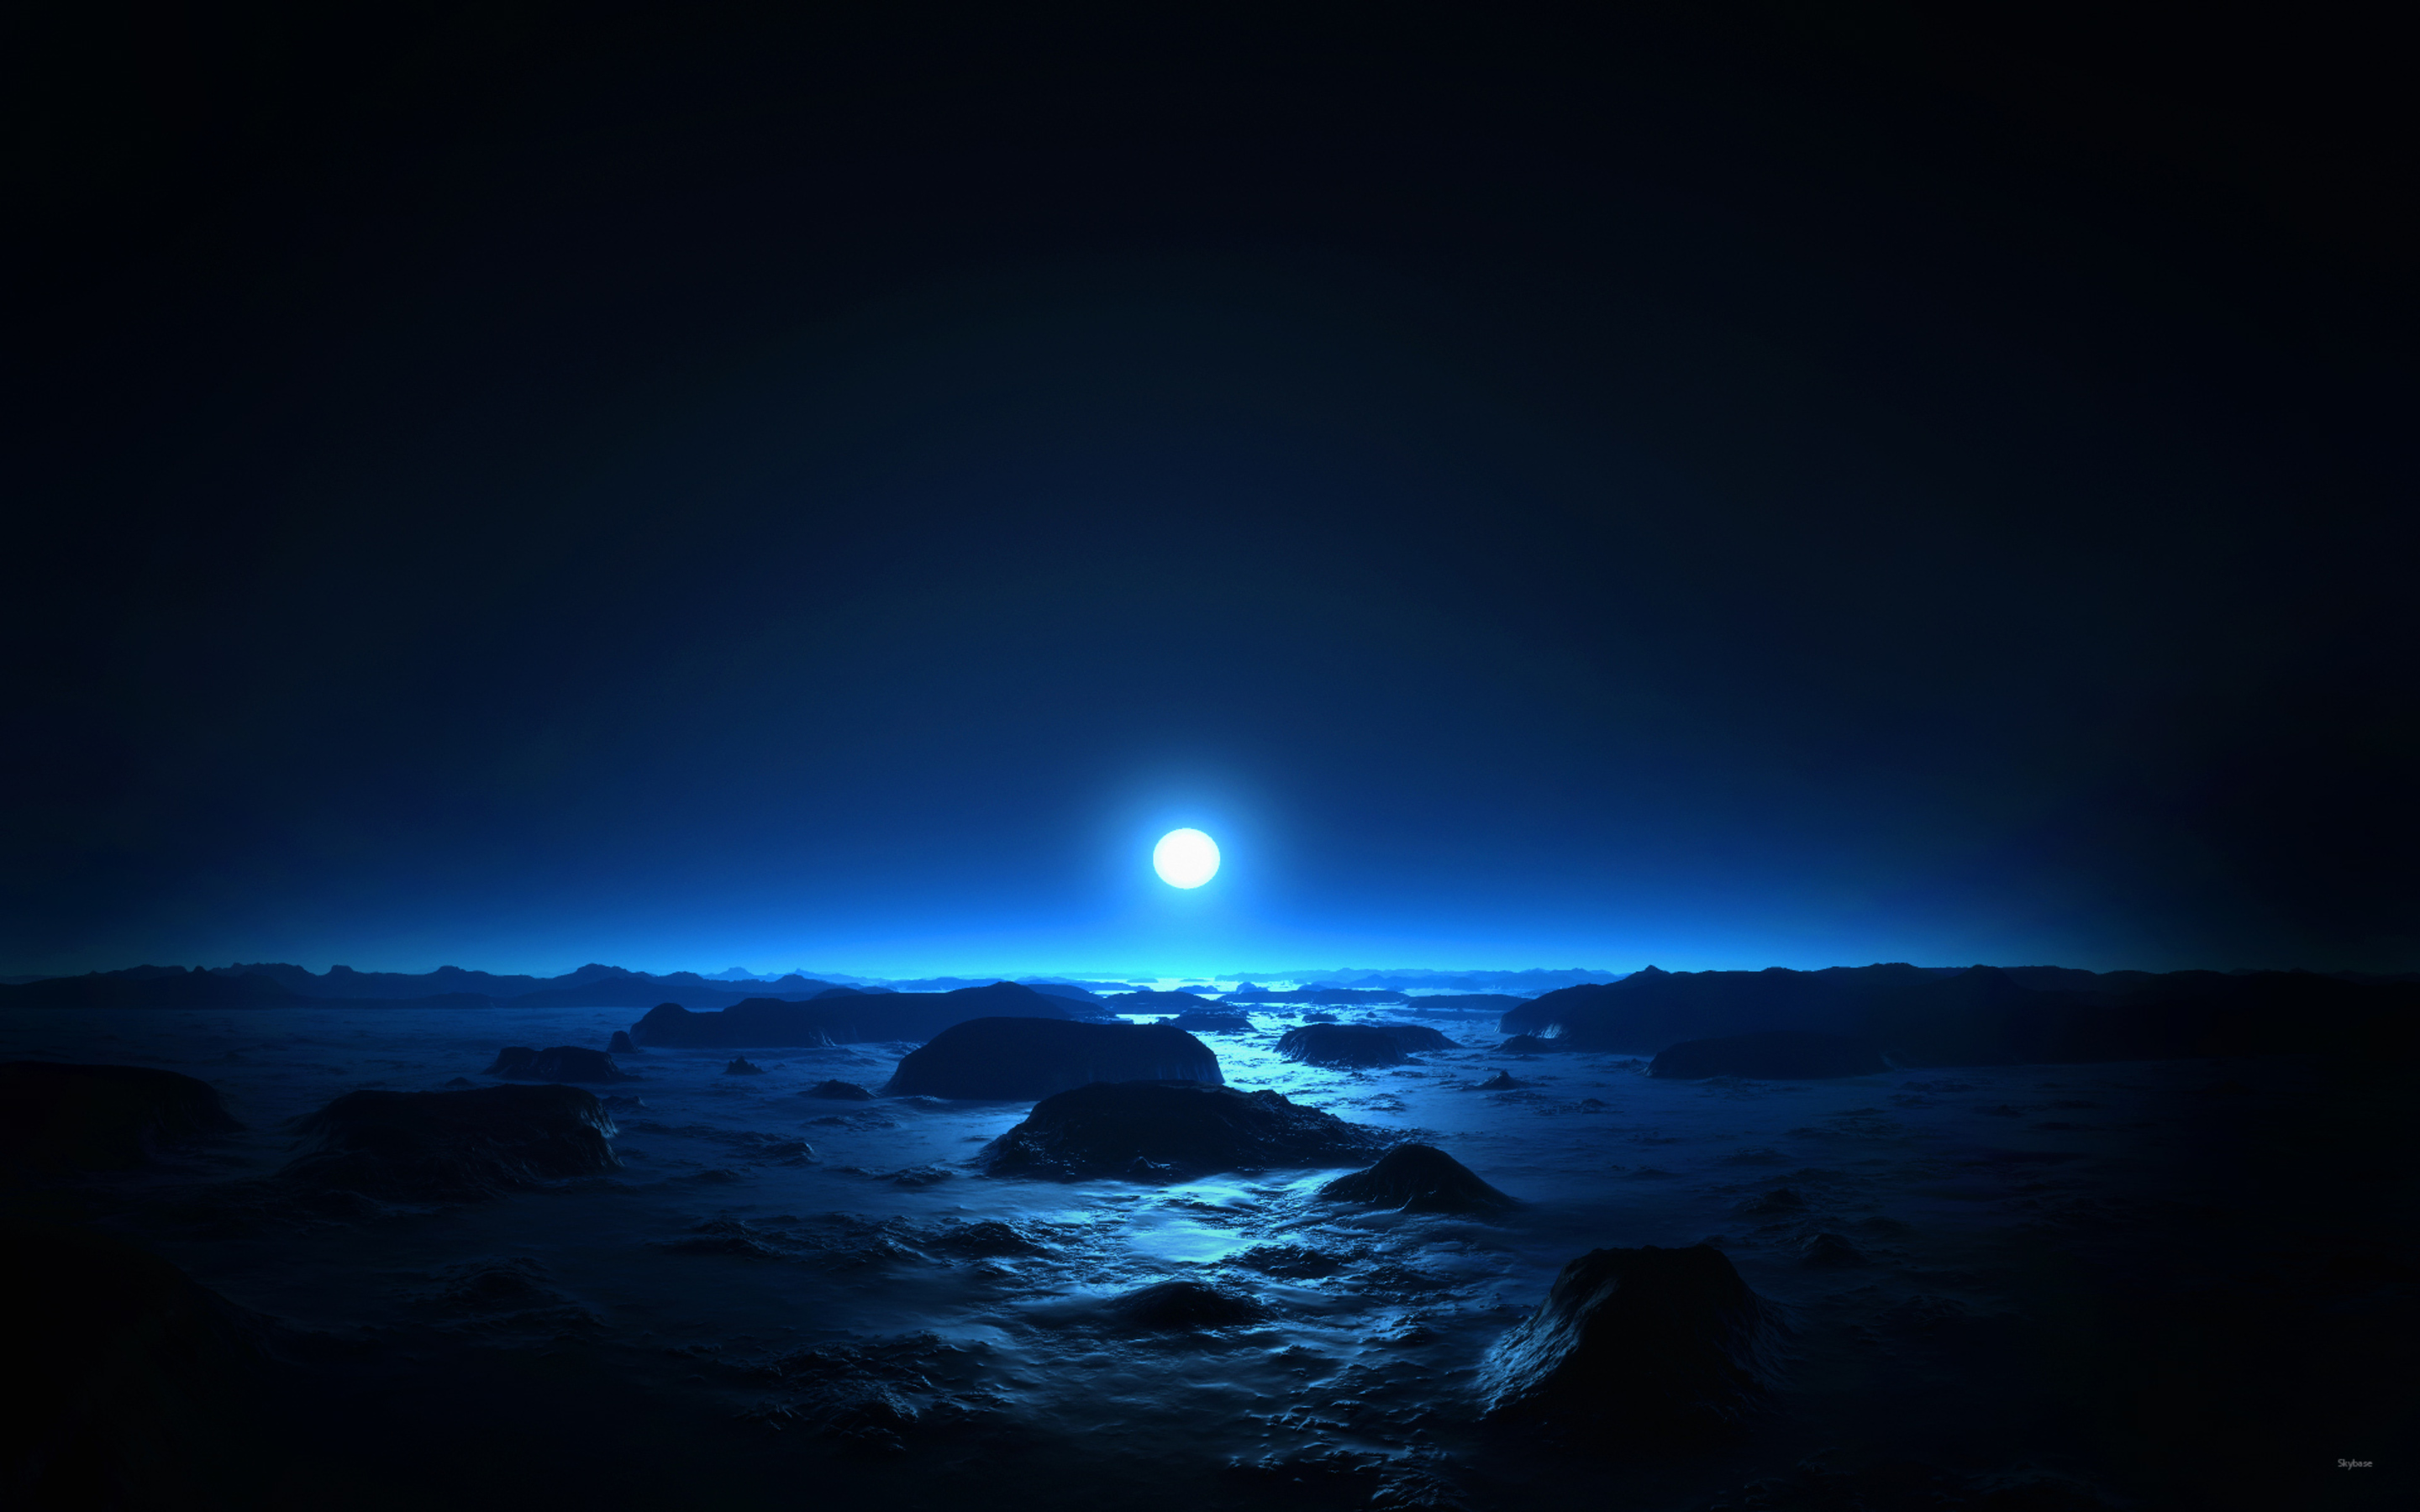 Blue Moon Wallpapers & Picture